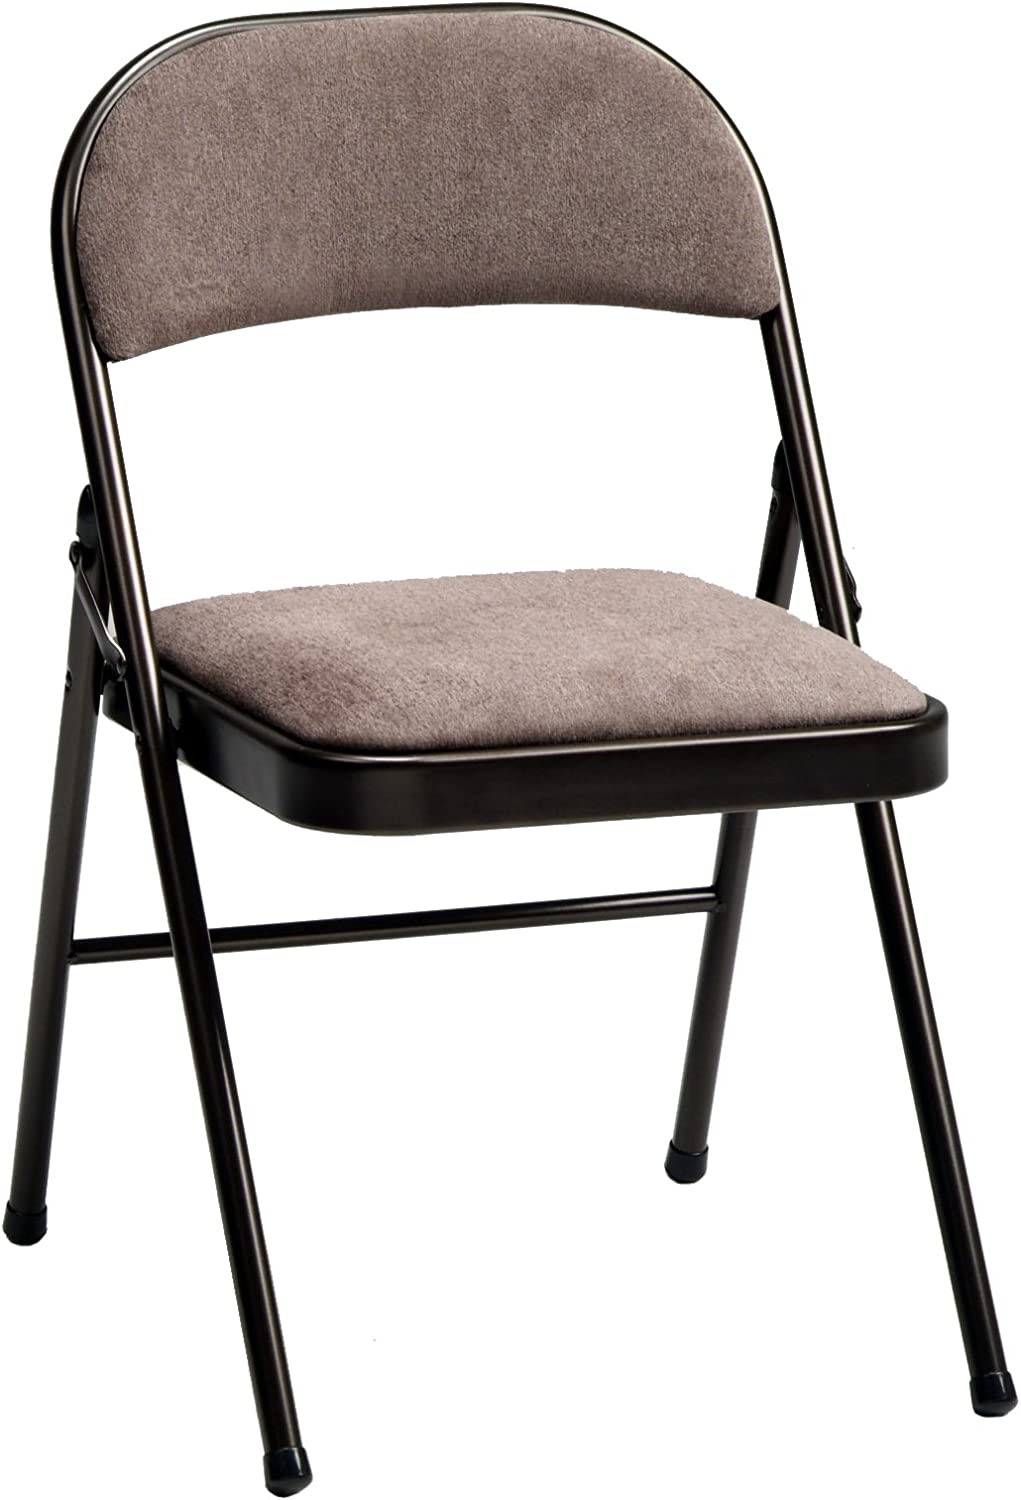 Amazon Com Meco 4 Pack Deluxe Fabric Padded Folding Chair Cinnabar Frame And Corrin Fabric Seat And Back Furniture Decor